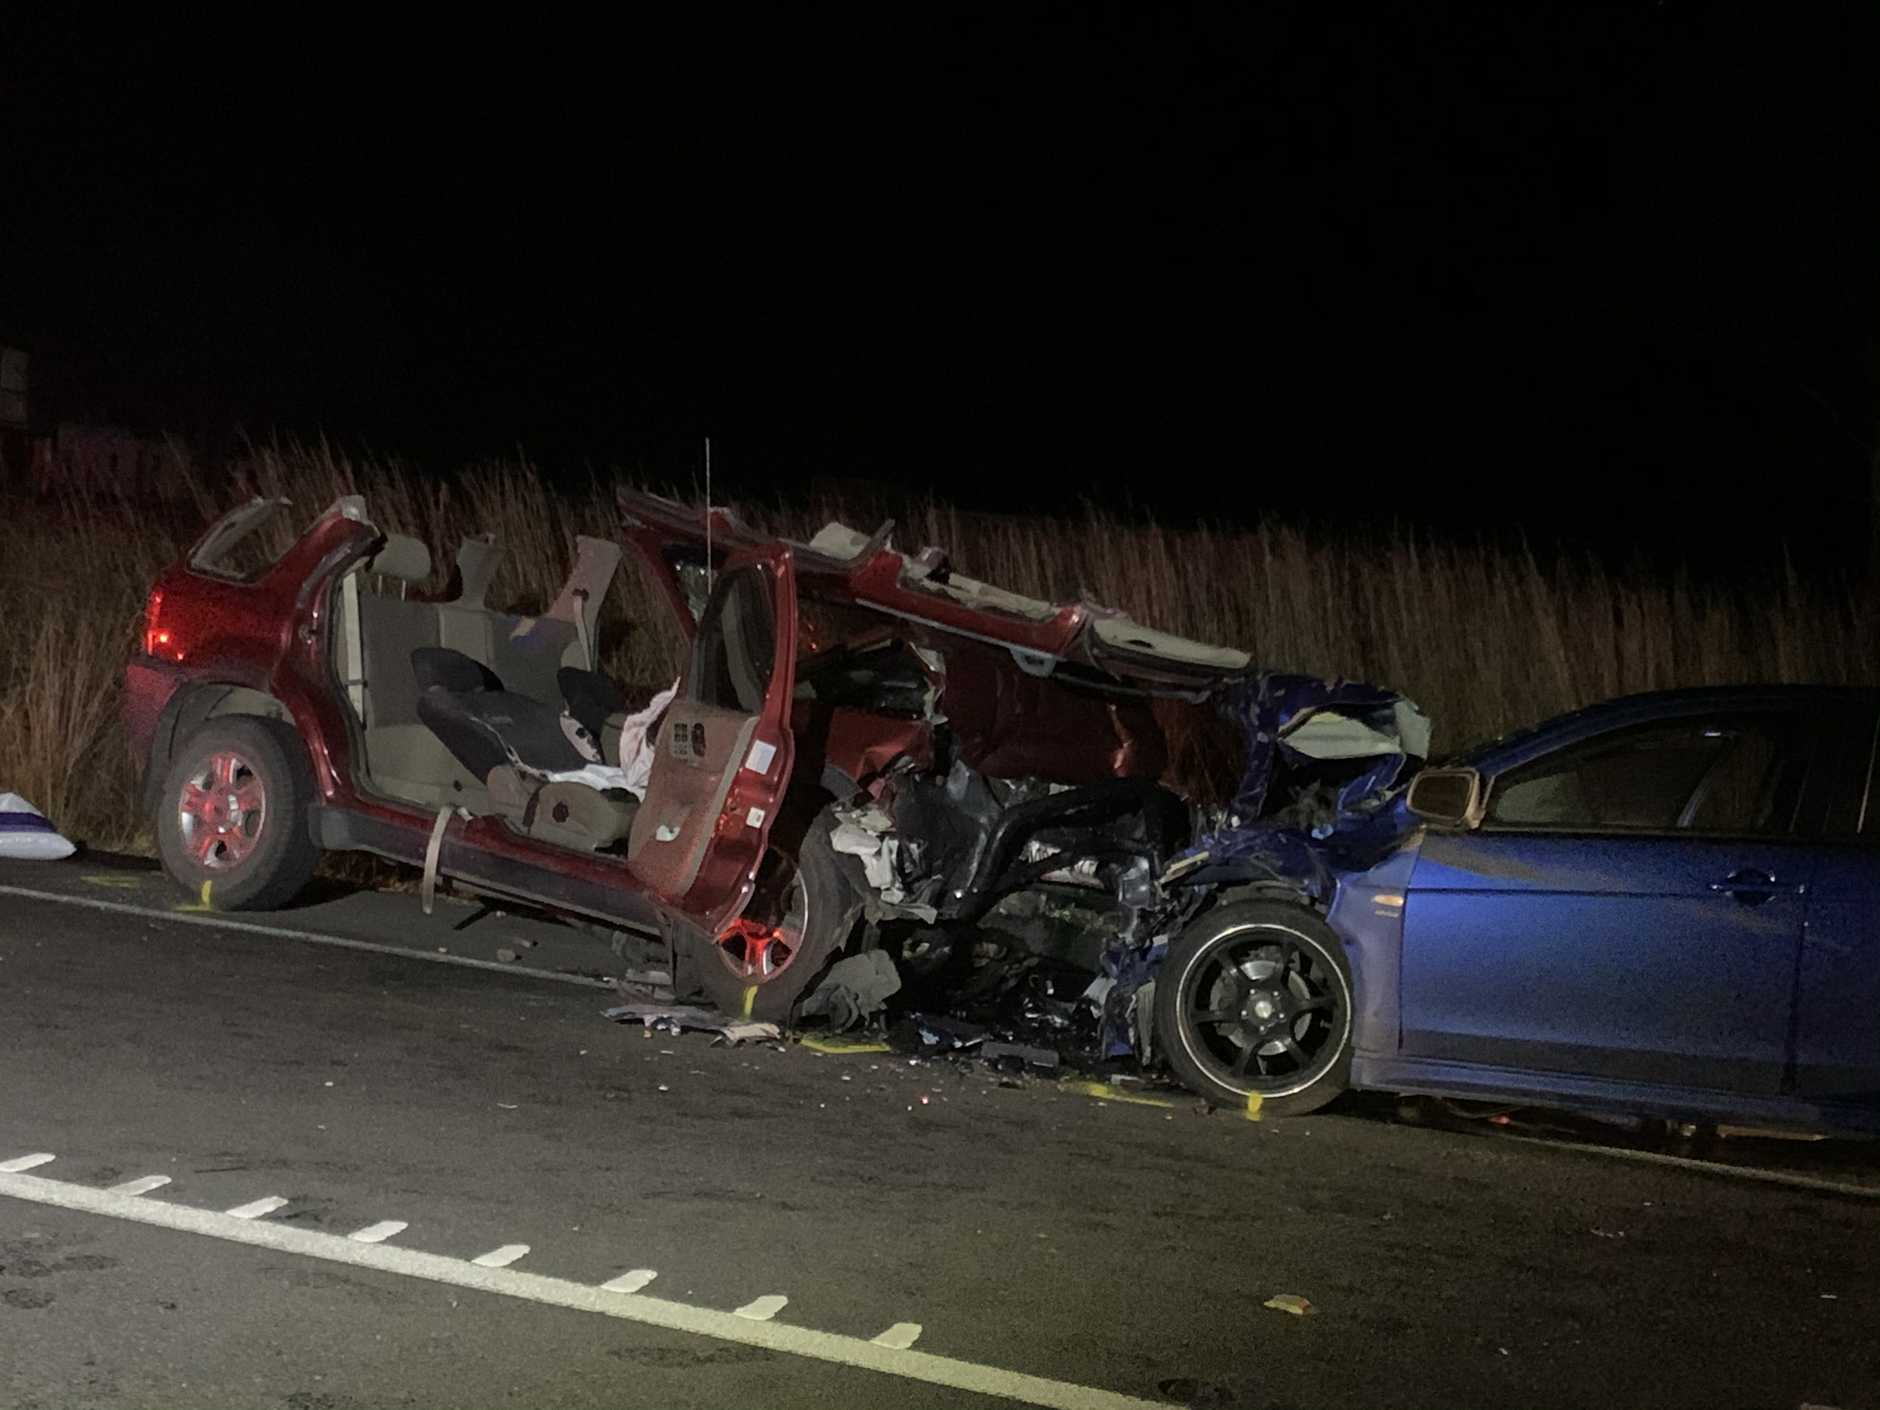 One person has been critically injured and another seriously injured in a crash at Tiaro.